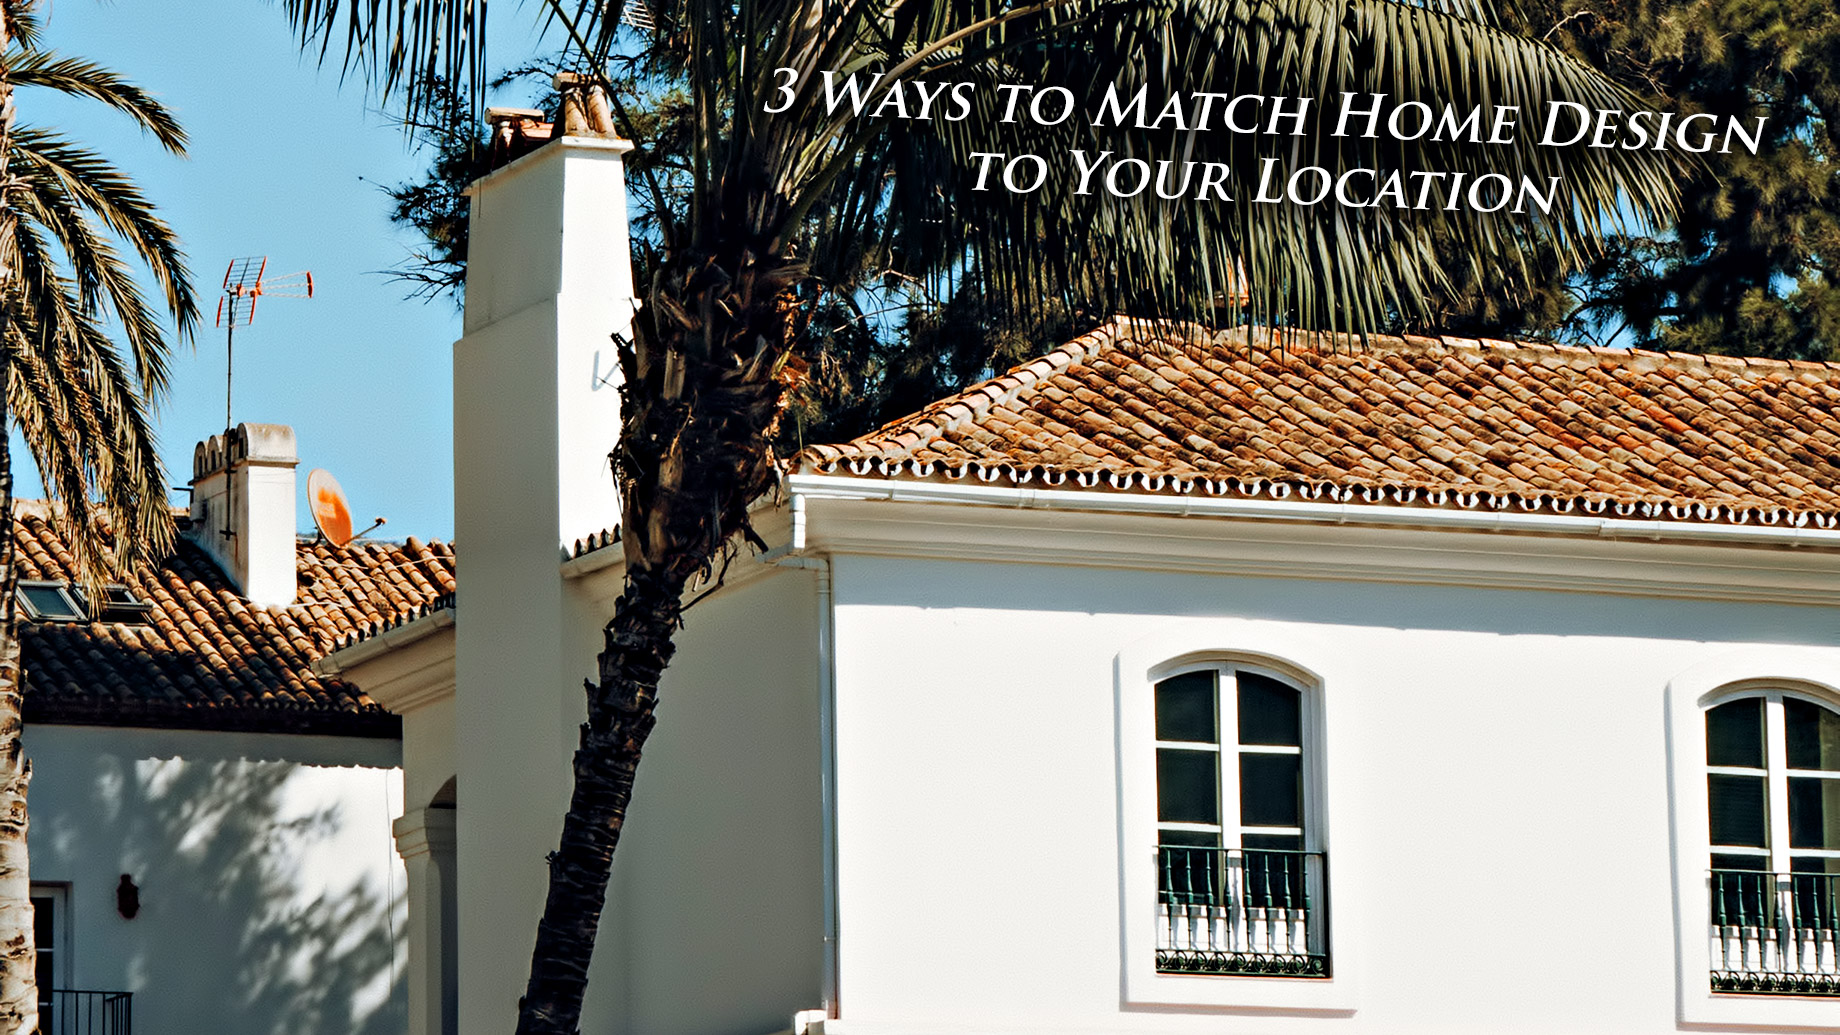 3 Ways to Match Home Design to Your Location